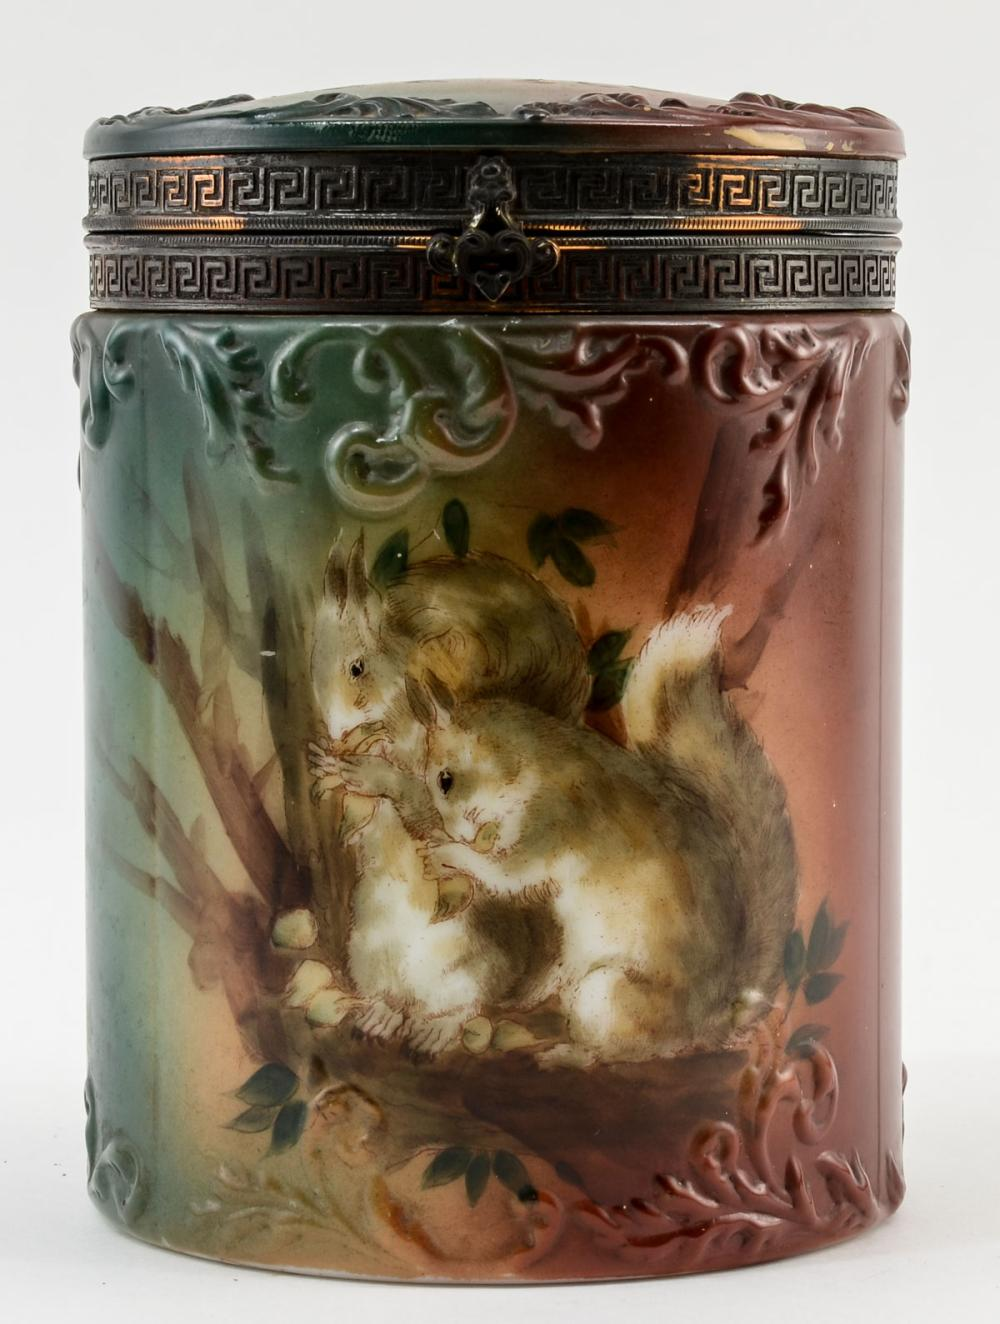 Handel Ware Glass Cigar Humidor w/ Squirrels